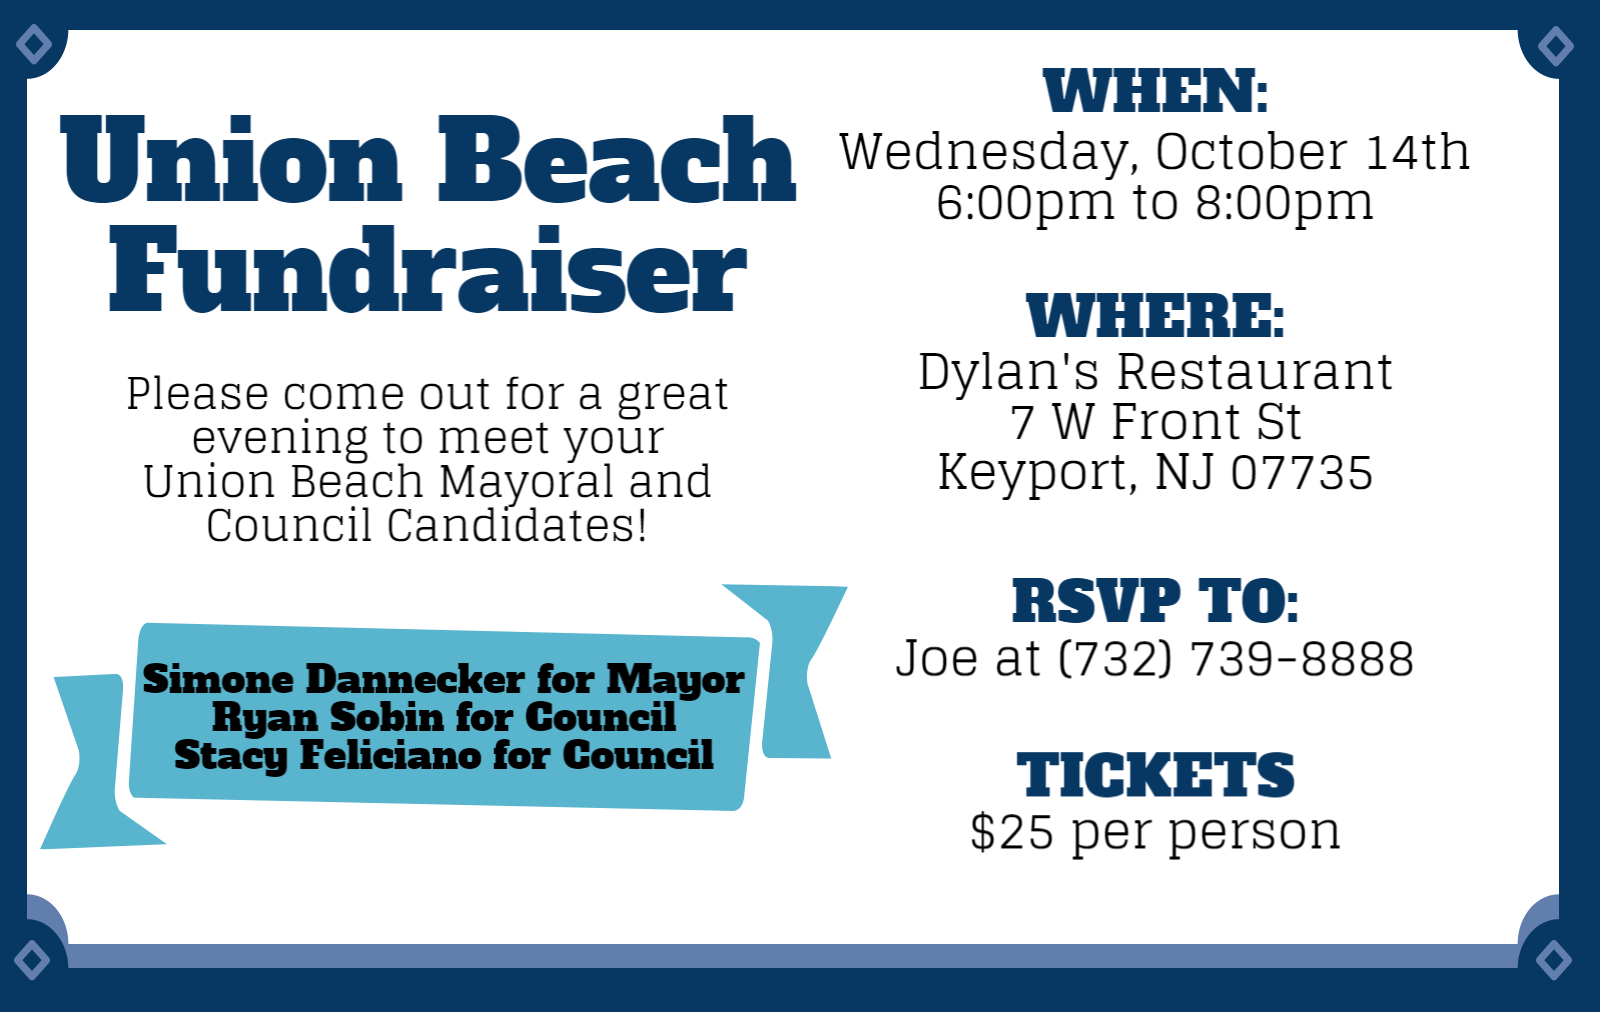 Union_Beach_Fundraiser.png